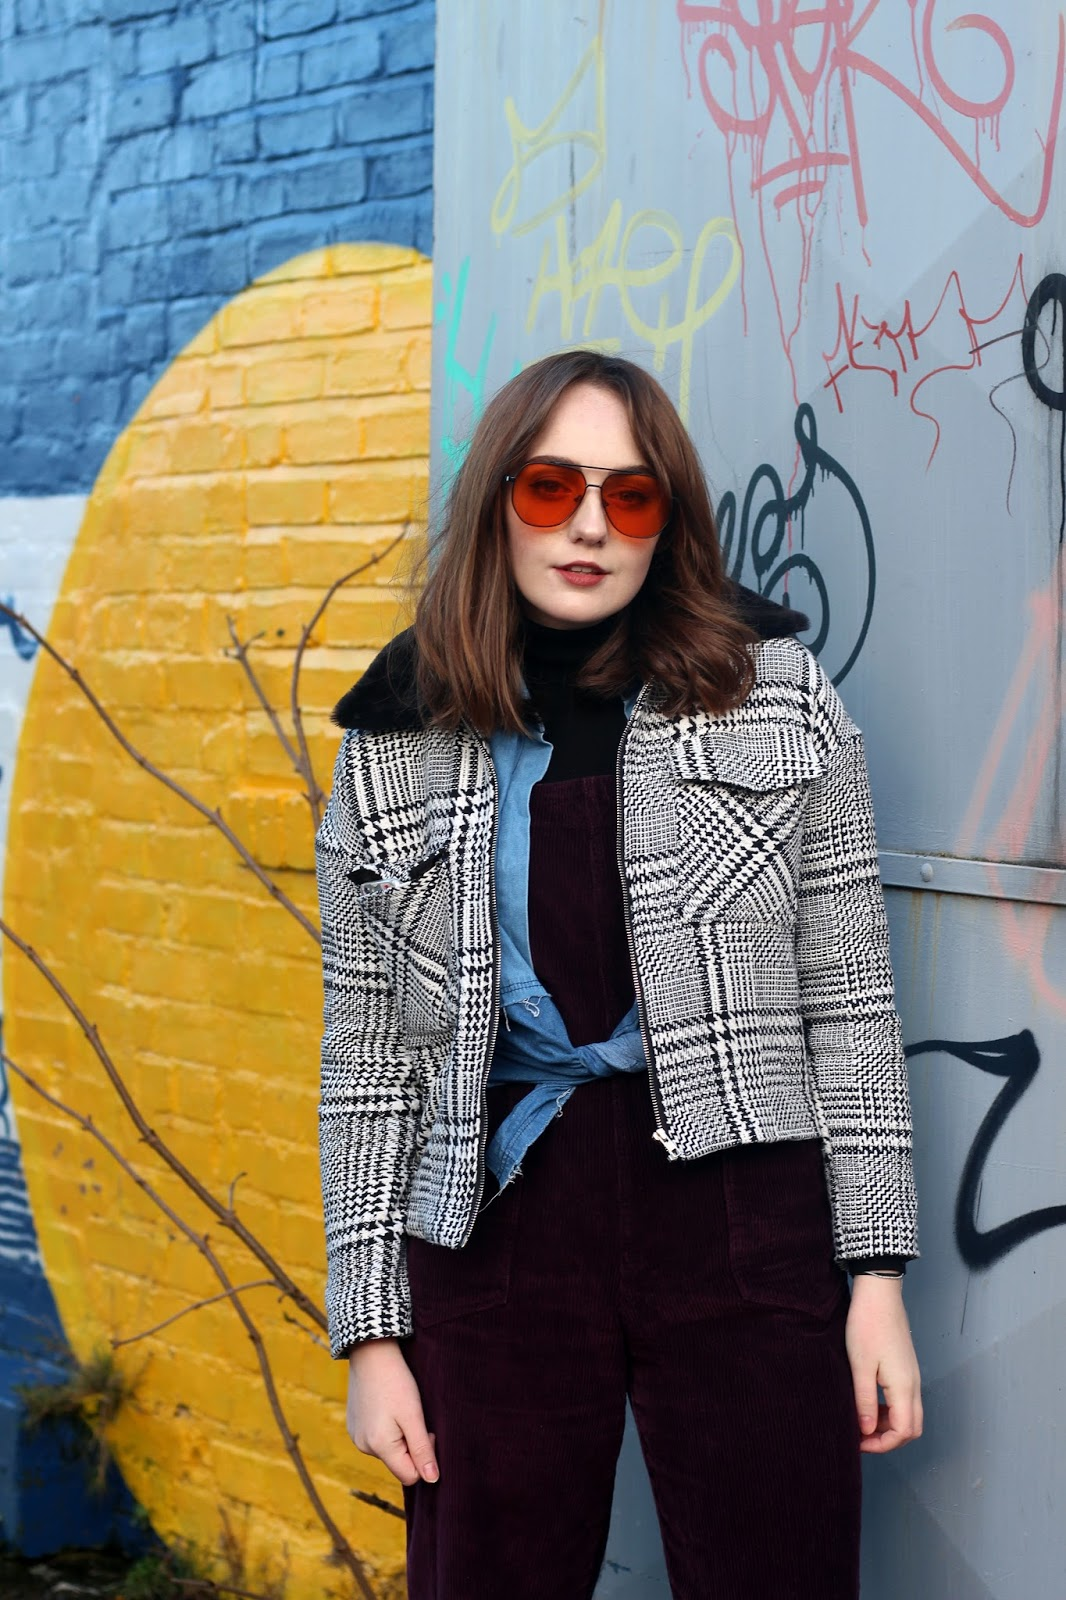 corduroy dungarees, denim shirt tied at waist, black and white checked jacket with black faux fur collar, orange tint aviator ASOS sunglasses